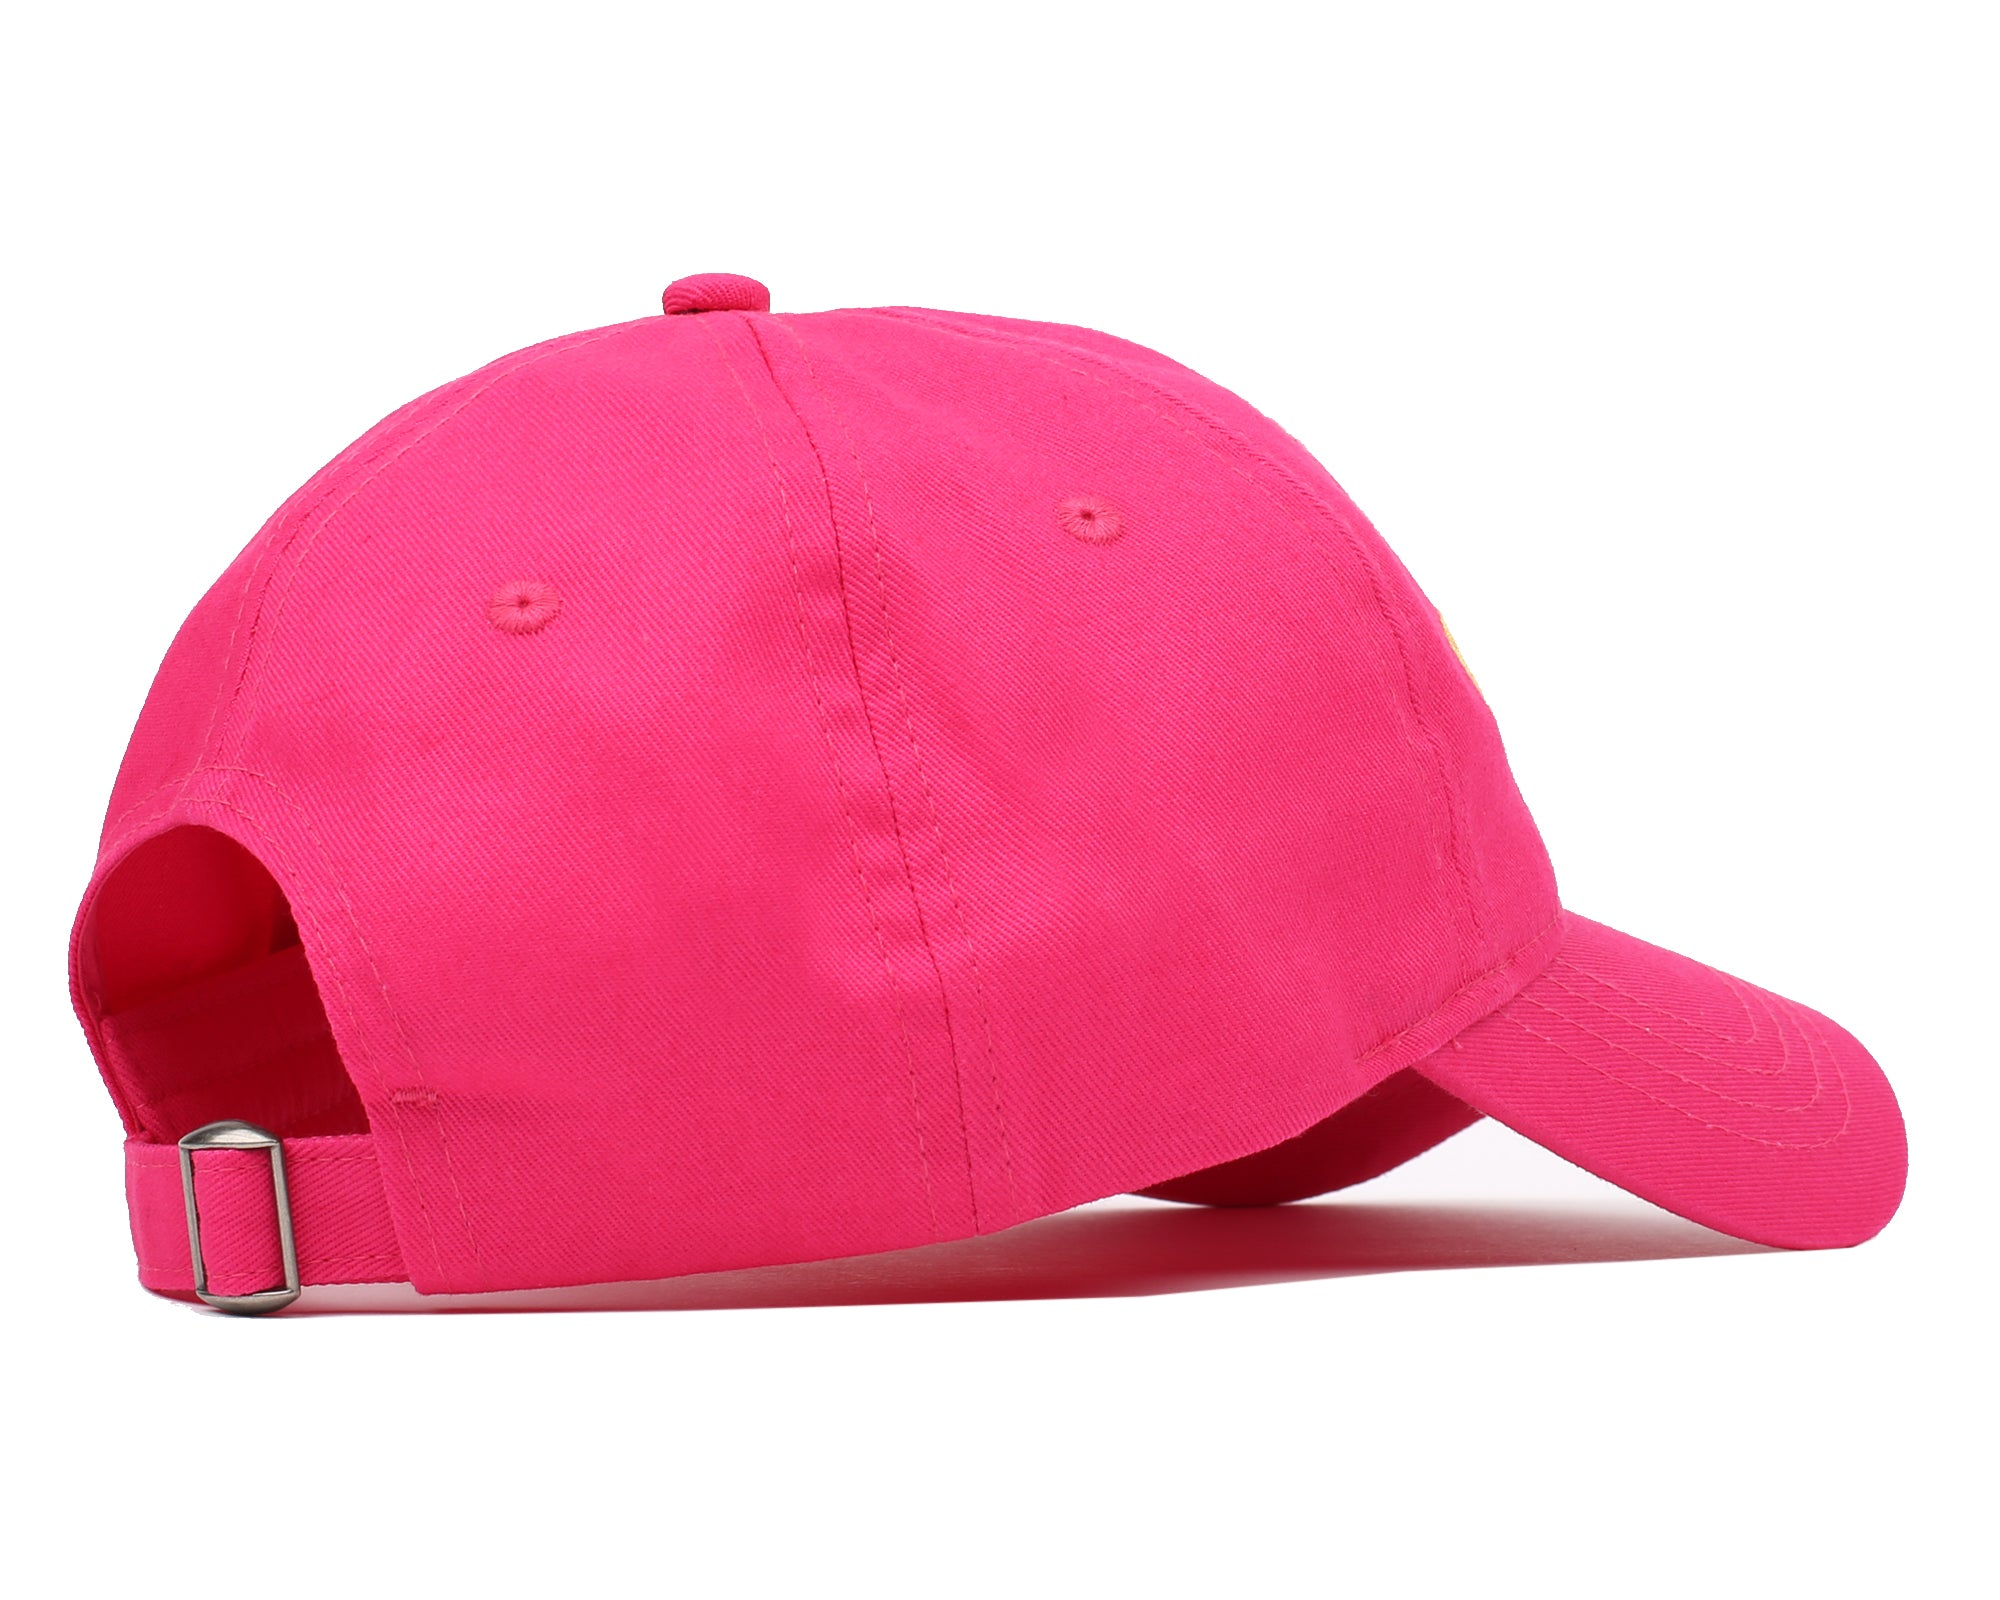 EMBROIDERED CURVED VISOR CAP - PINK